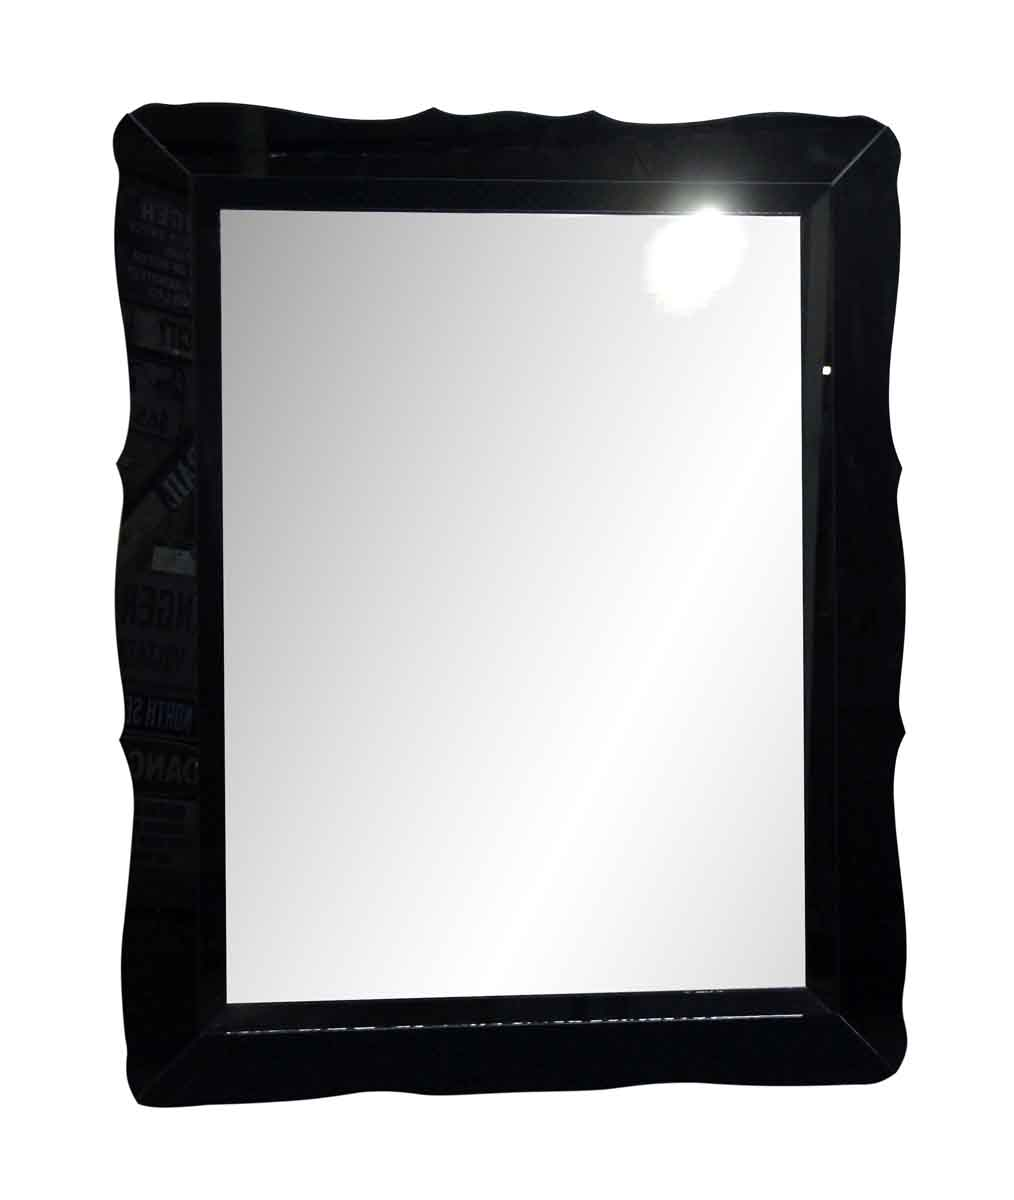 Oversized Vintage Black Mirror with Glass Frame | Olde Good Things